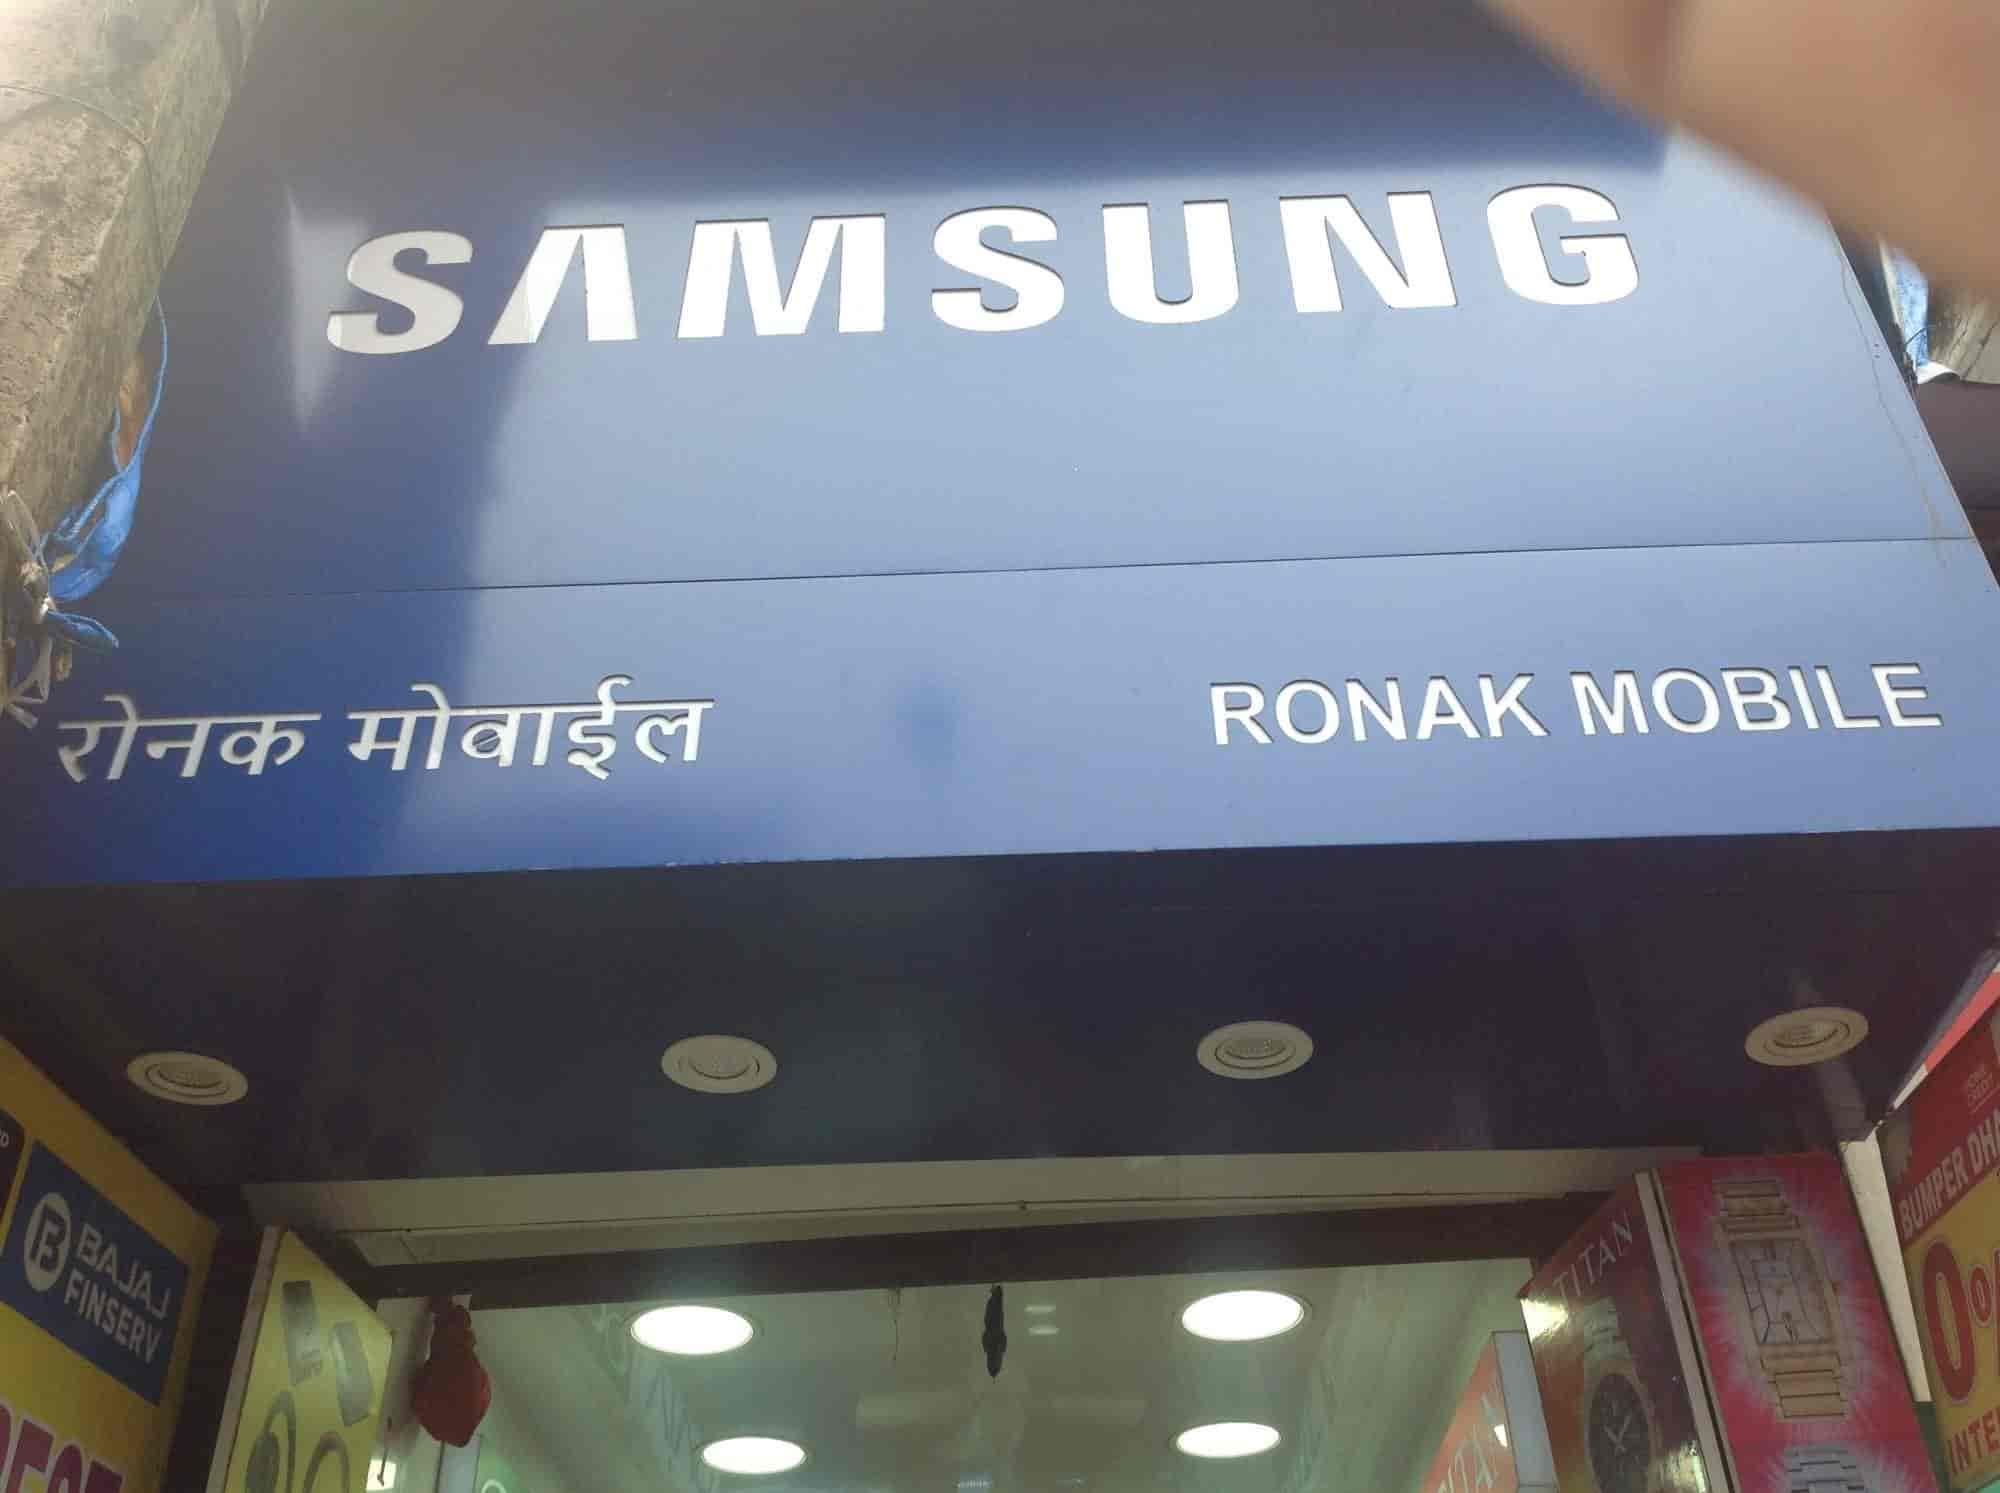 Ronak Mobile, Goregaon West - Mobile Phone Dealers in Mumbai